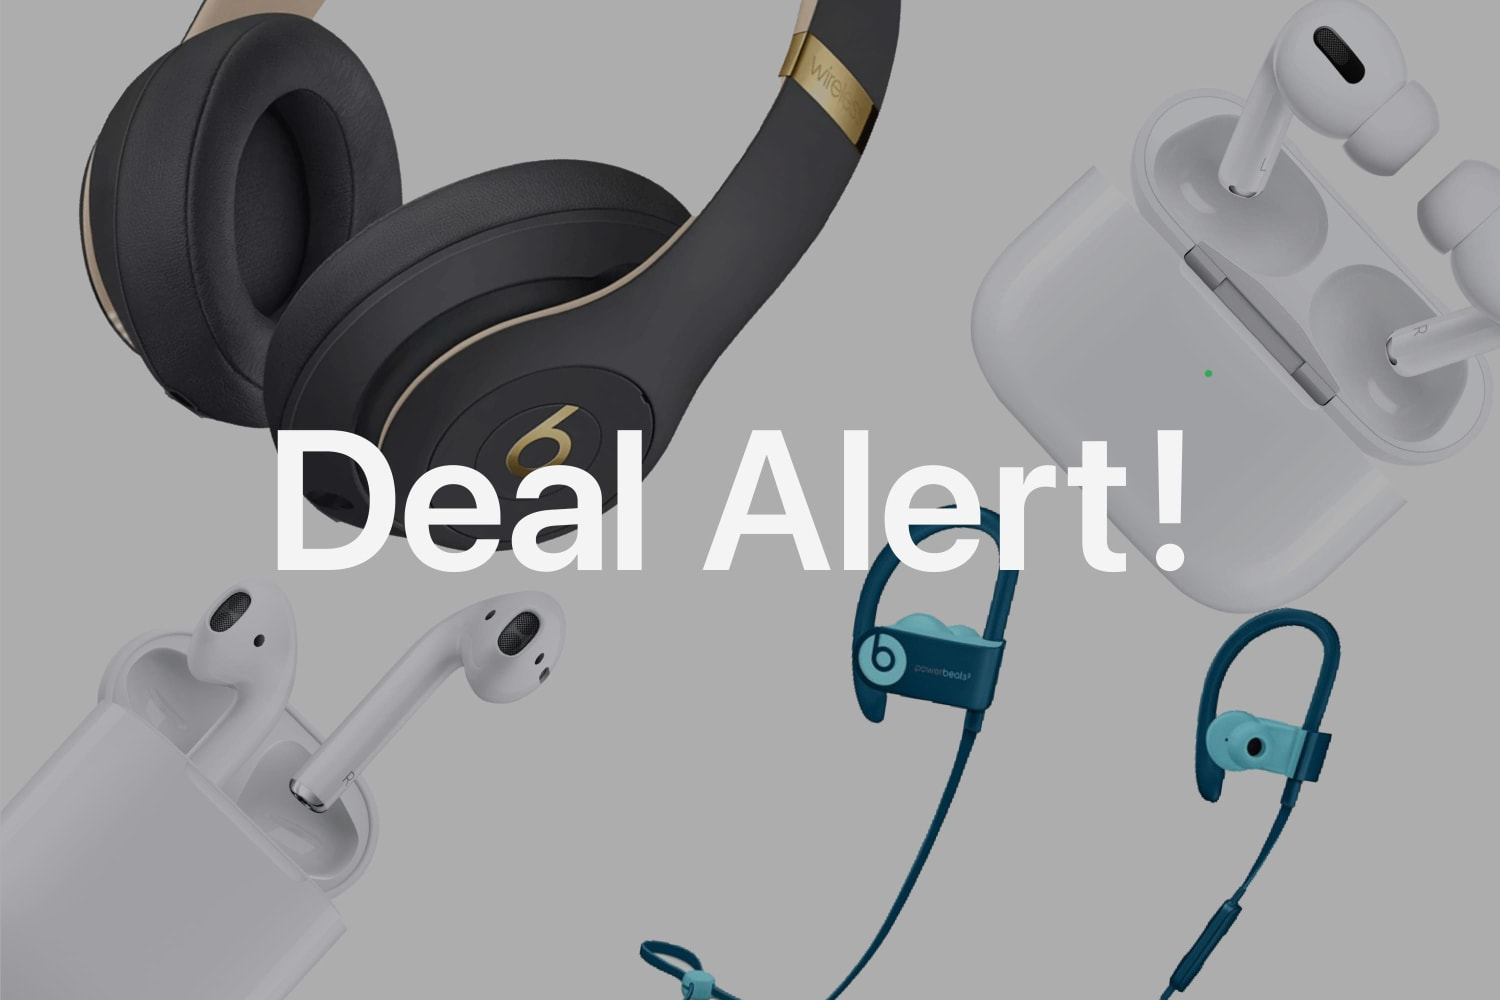 best-black-friday-deals-for-apple-airpods-and-beats-by-dr-dre-20201118-1